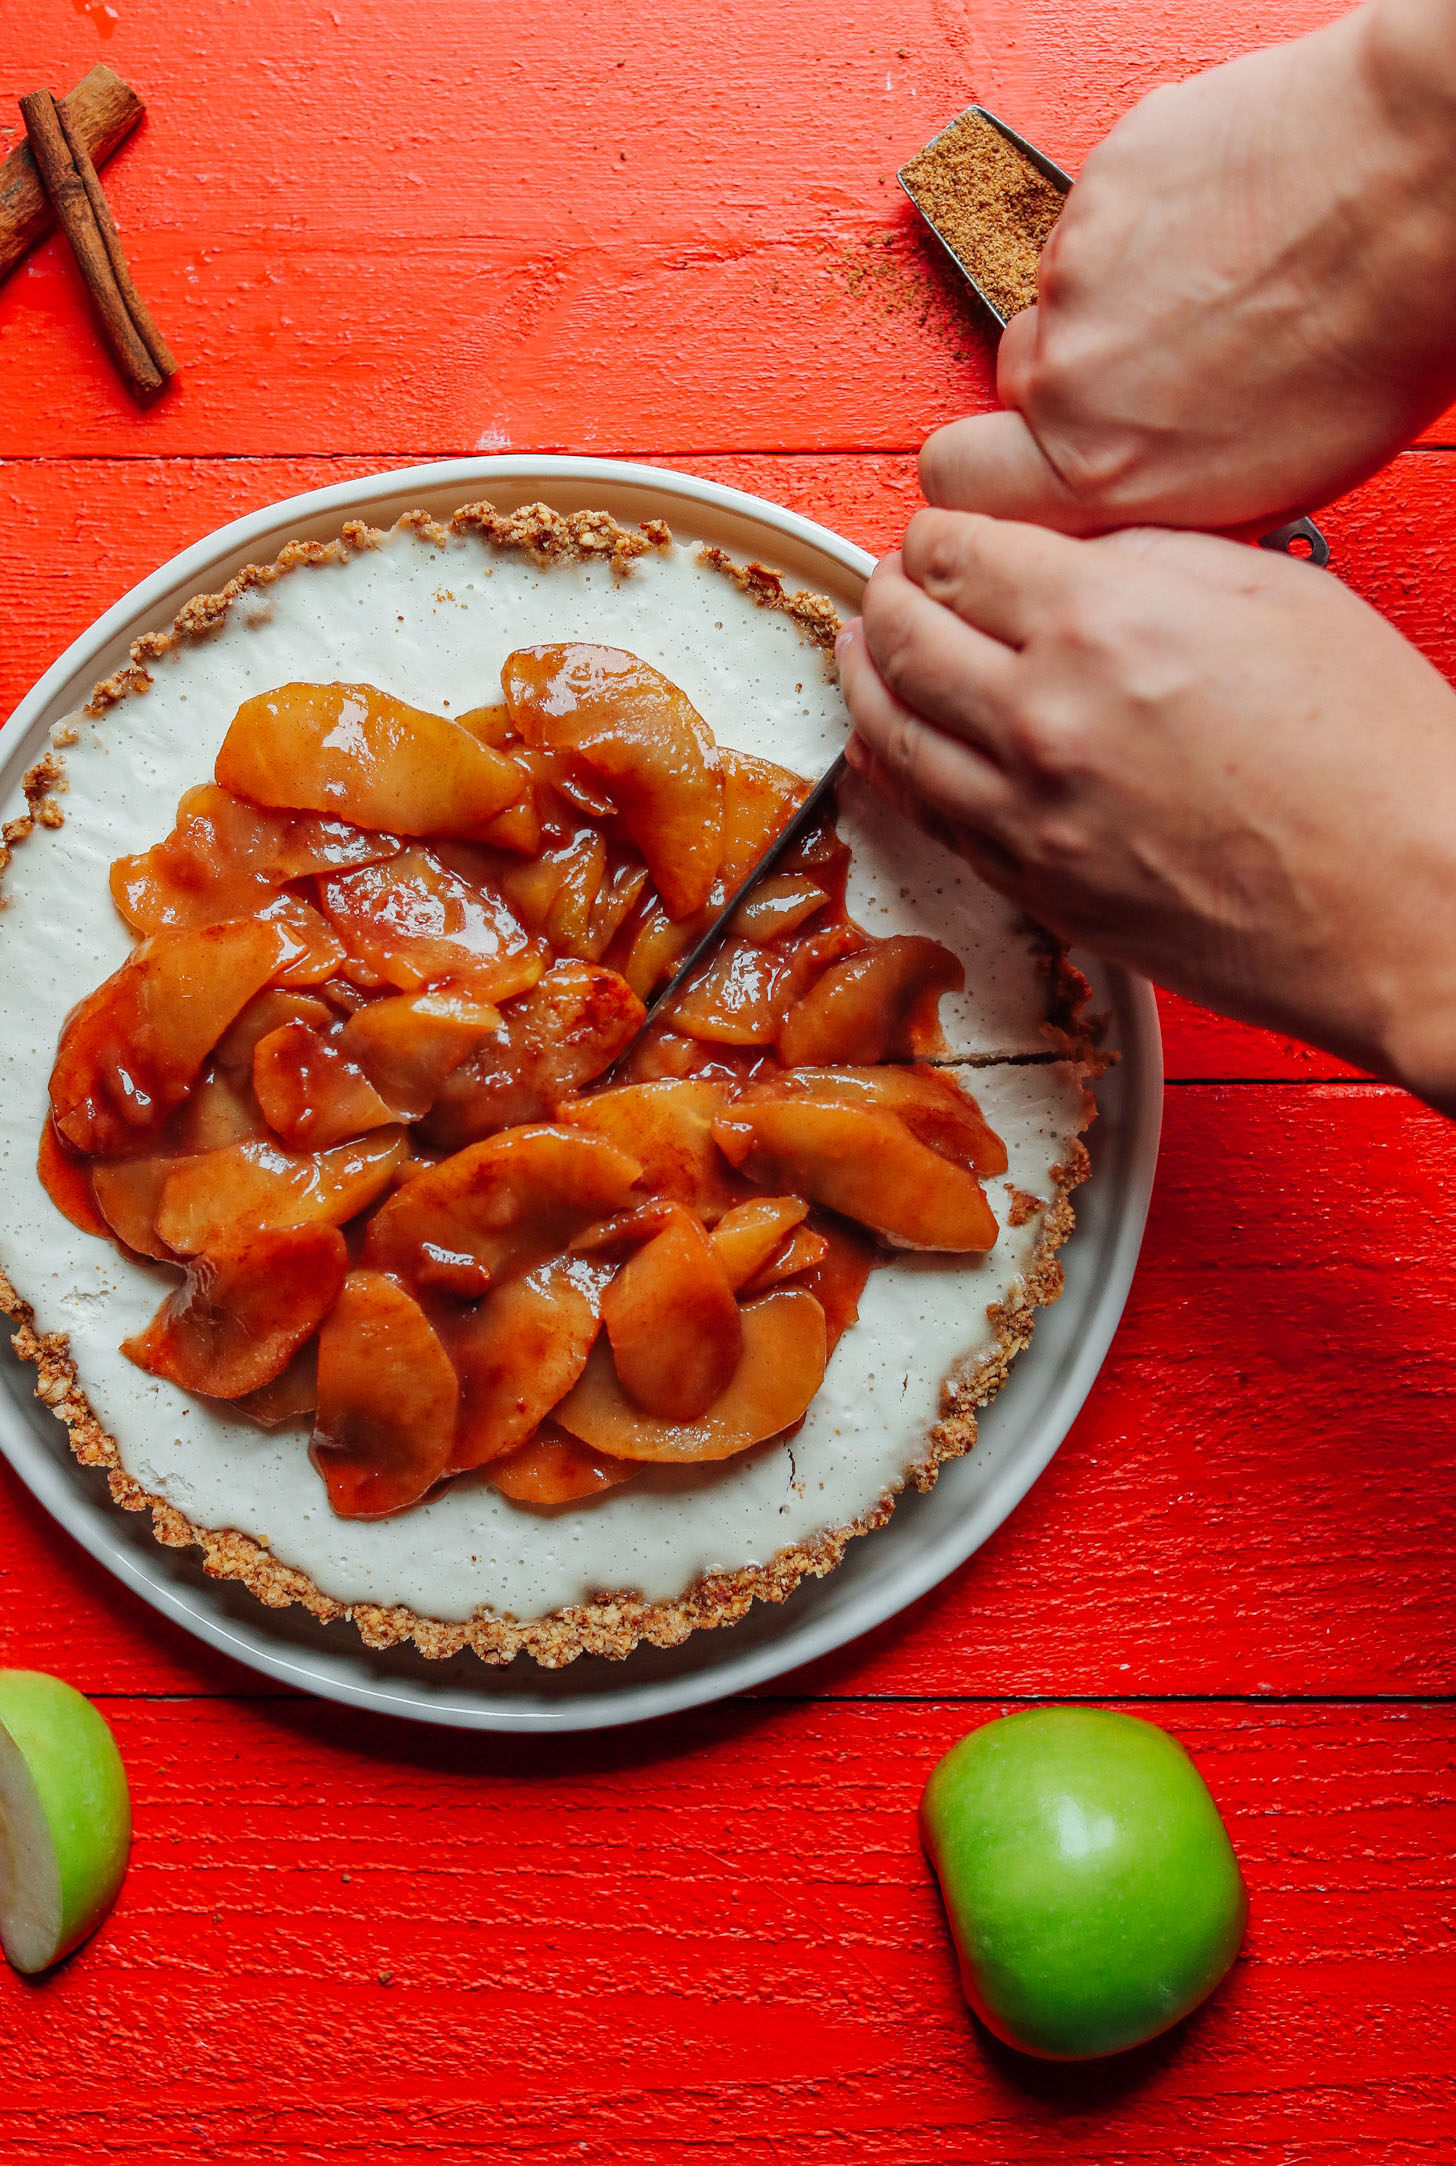 Slicing into our gluten-free vegan Caramel Apple Tart